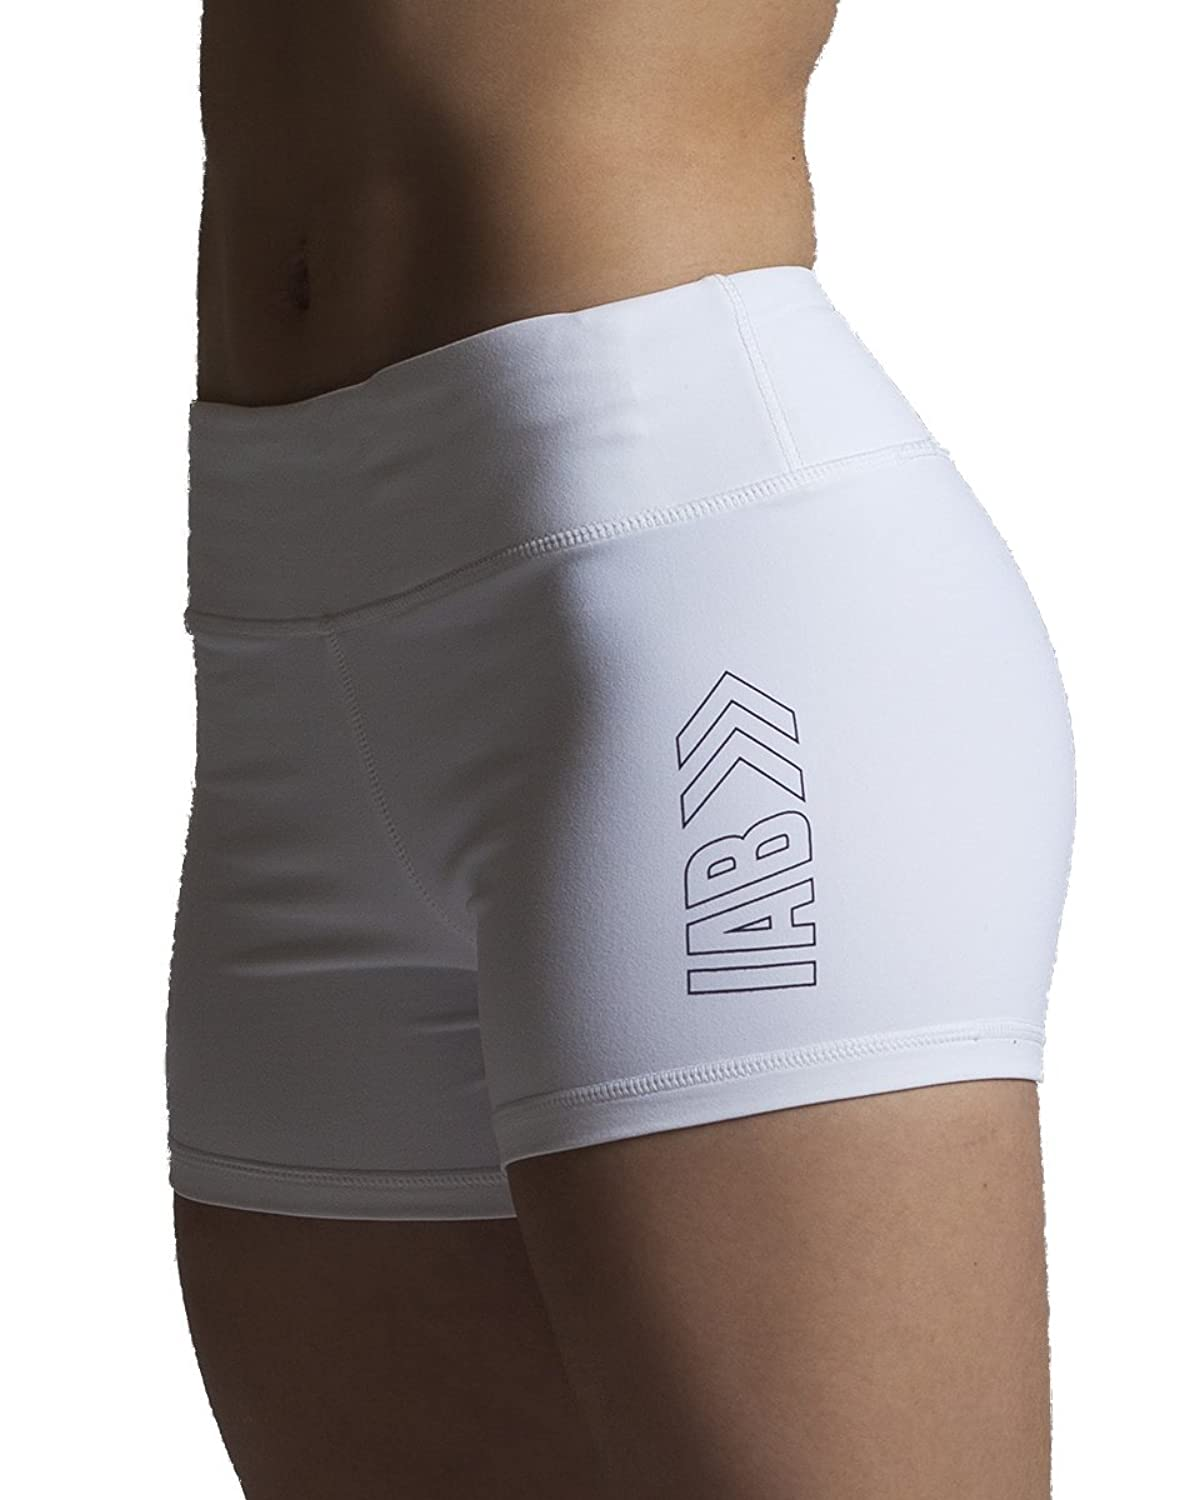 "3"" Inseam Compression Shorts for Yoga, Running, Volleyball, and Crossfit Athletes"